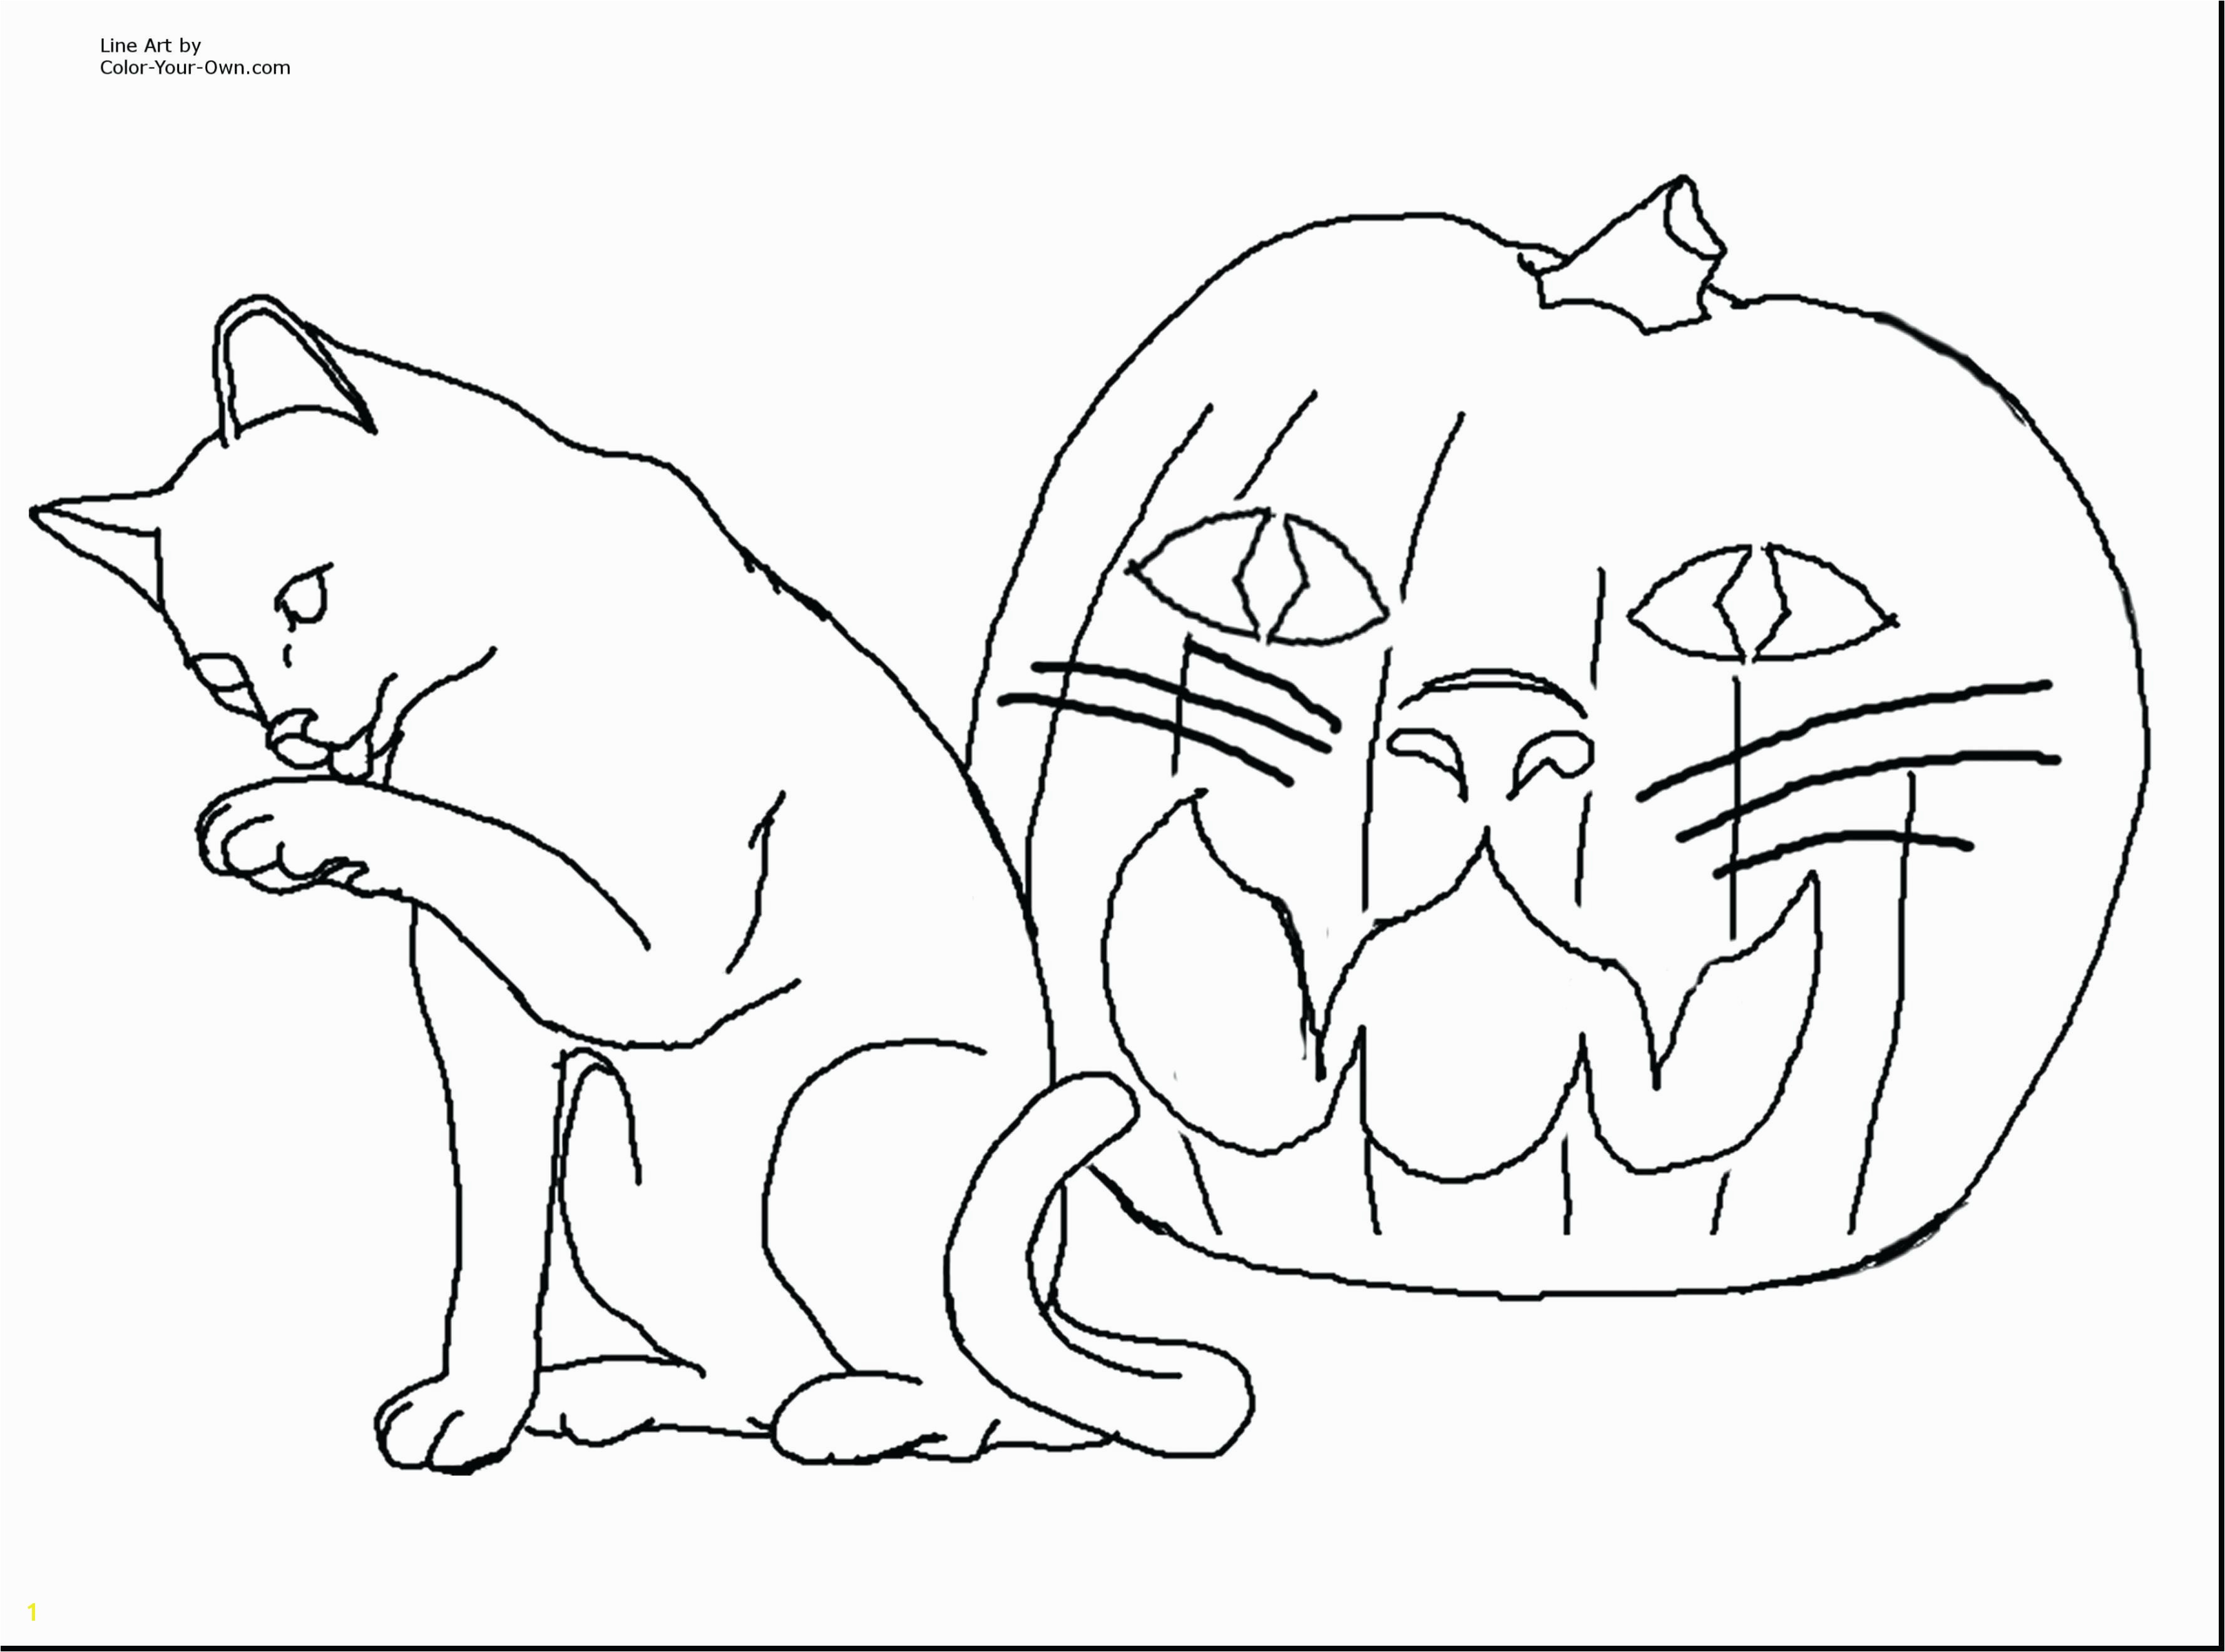 Realistic Cat Coloring Pages 2018 Coloring Pages Animals Realistic Katesgrove